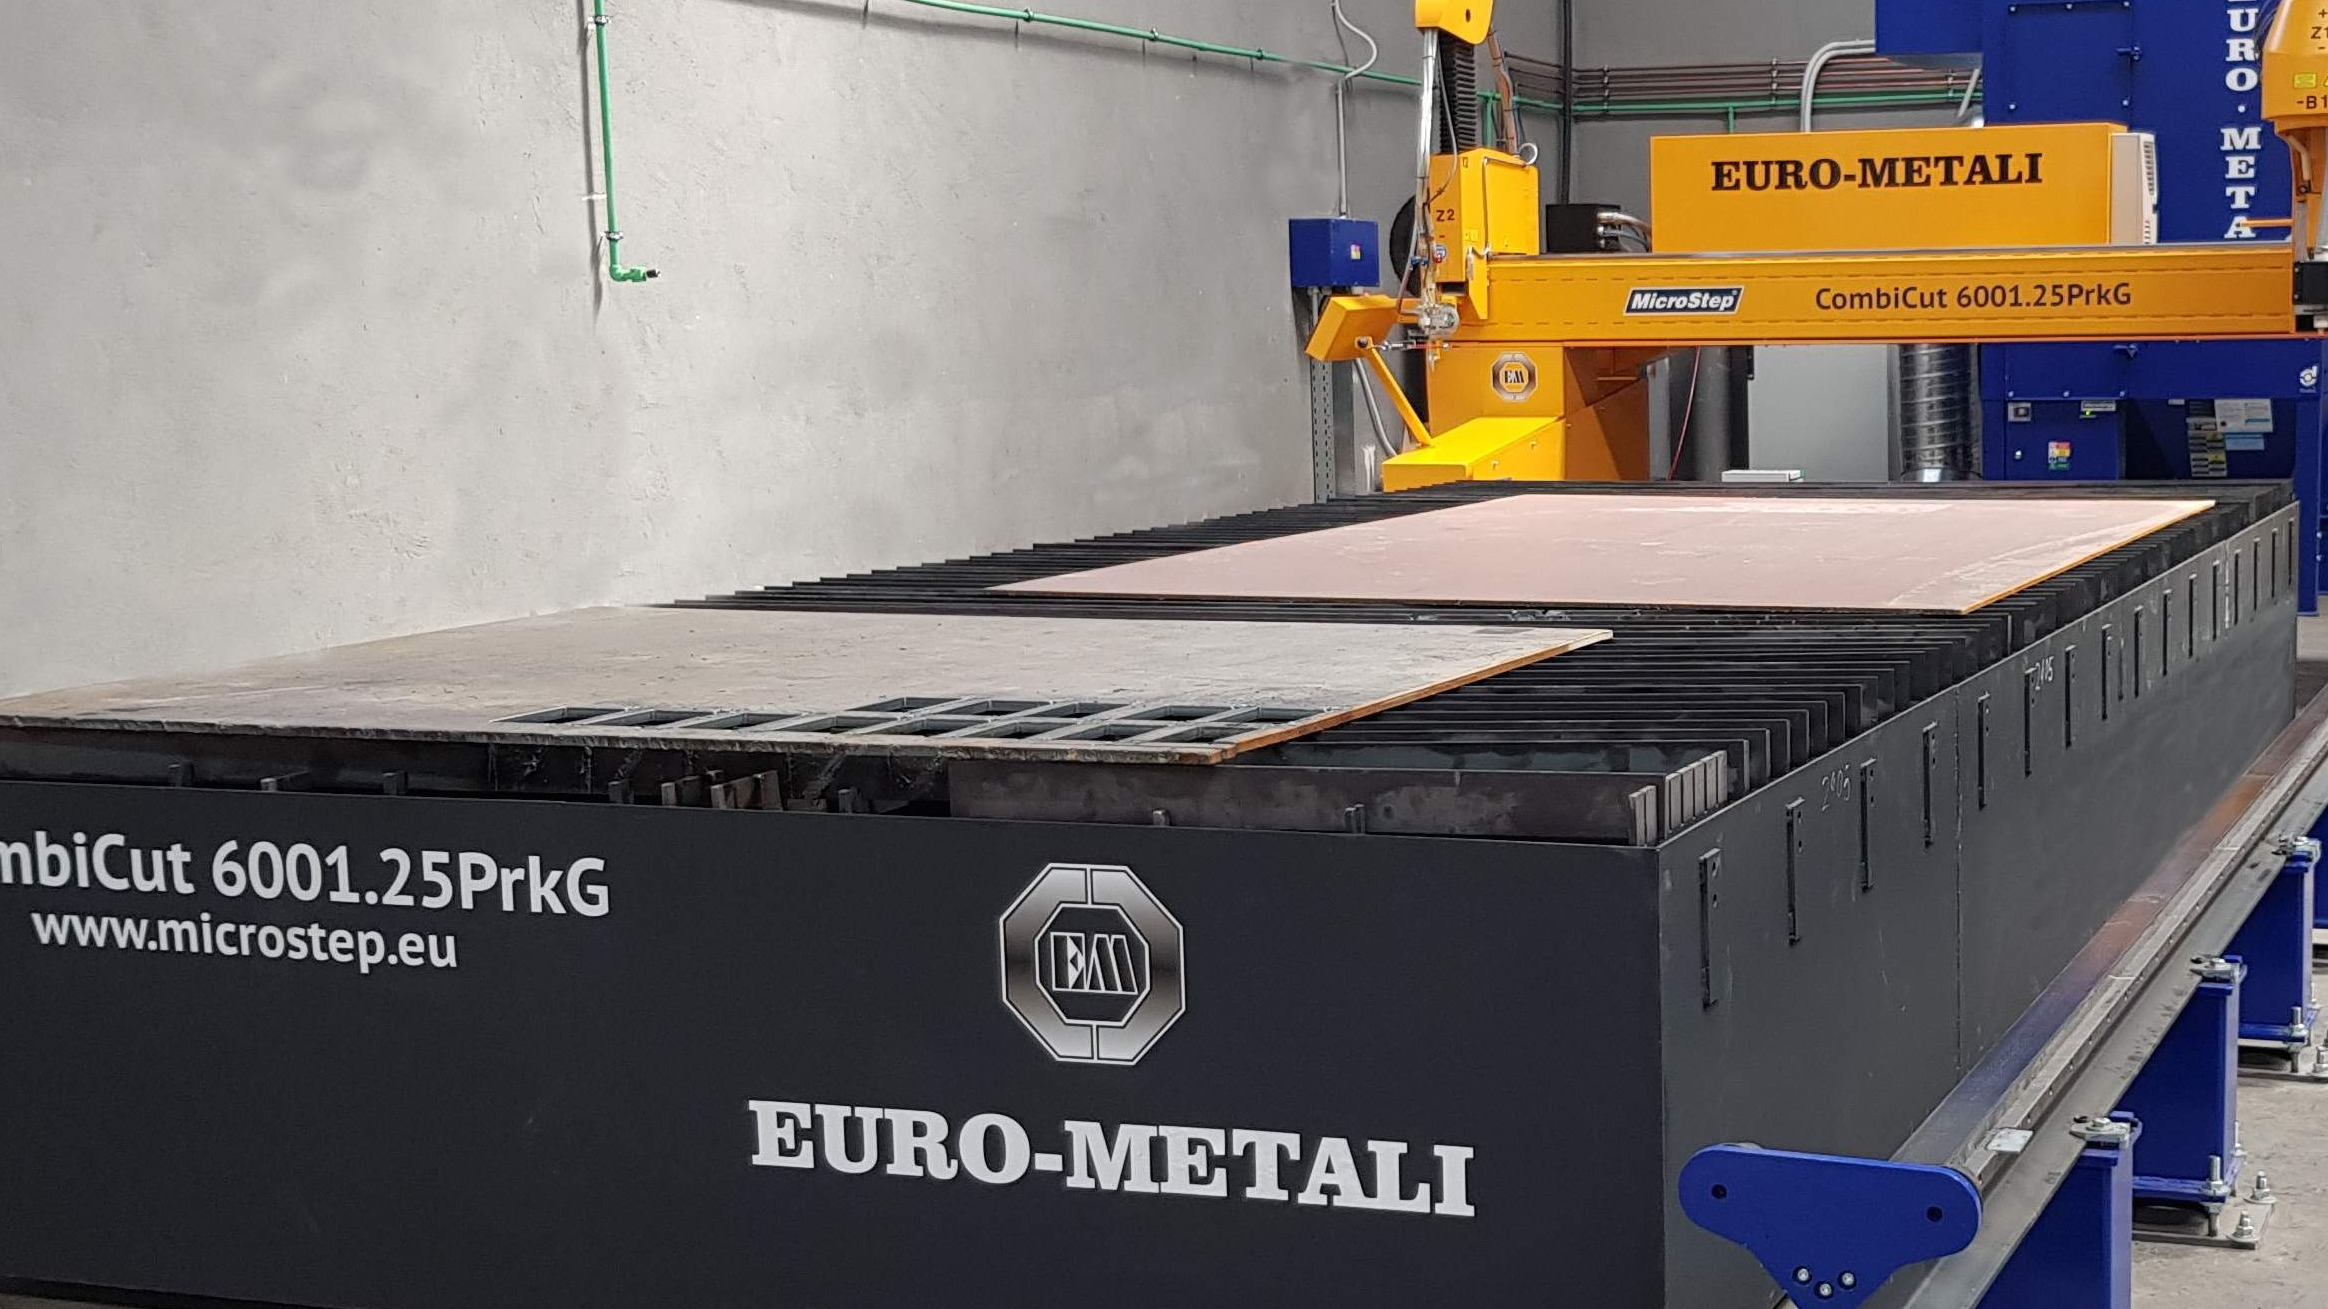 By investing in new technologies, Euro - metals entered a new business segment